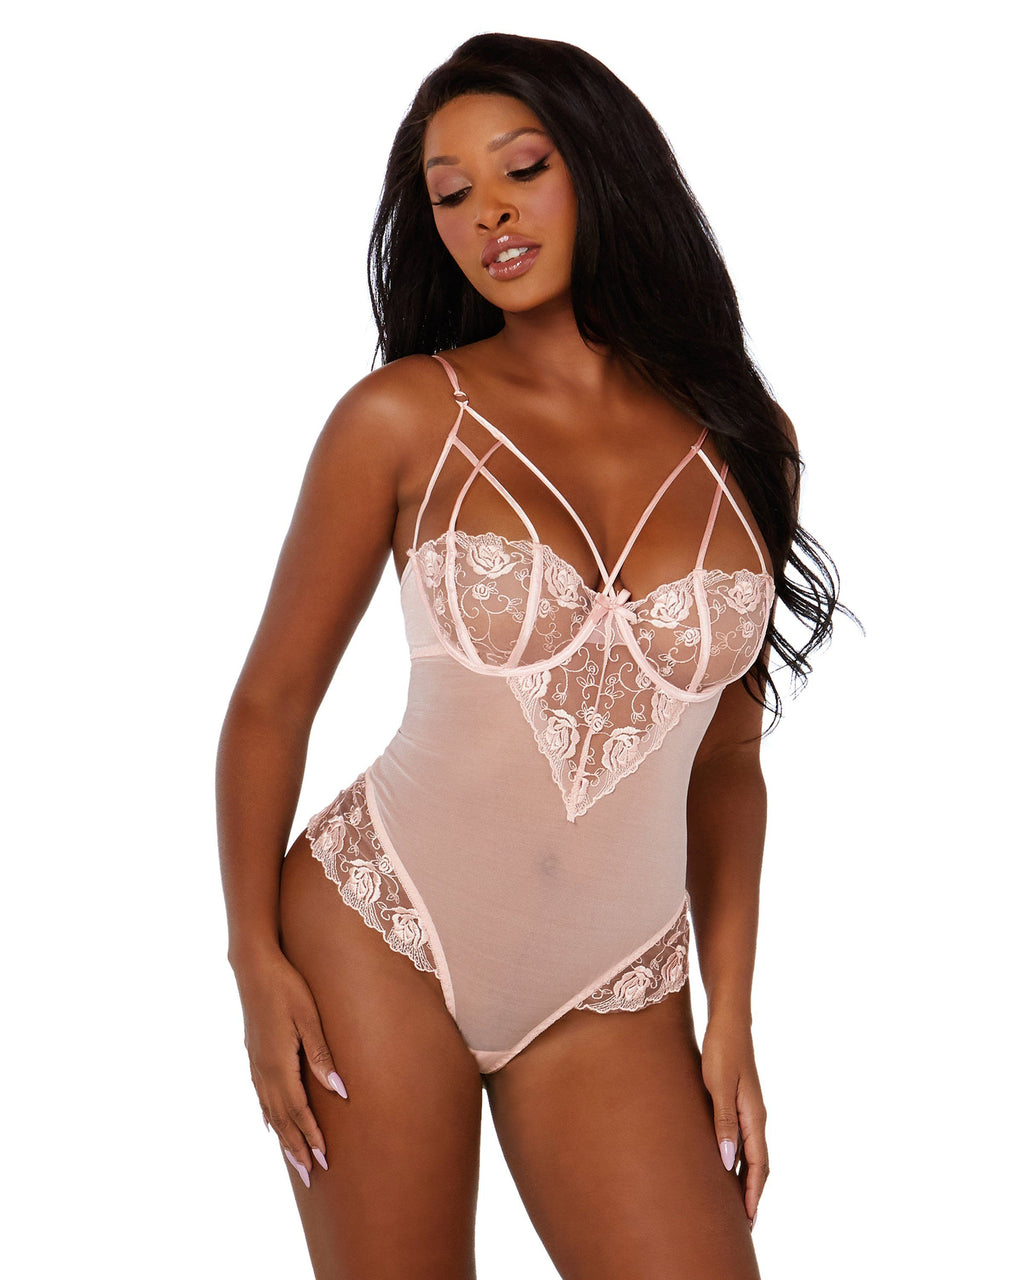 Opalescent Mesh and Embroidered Lace Teddy Teddy Dreamgirl International